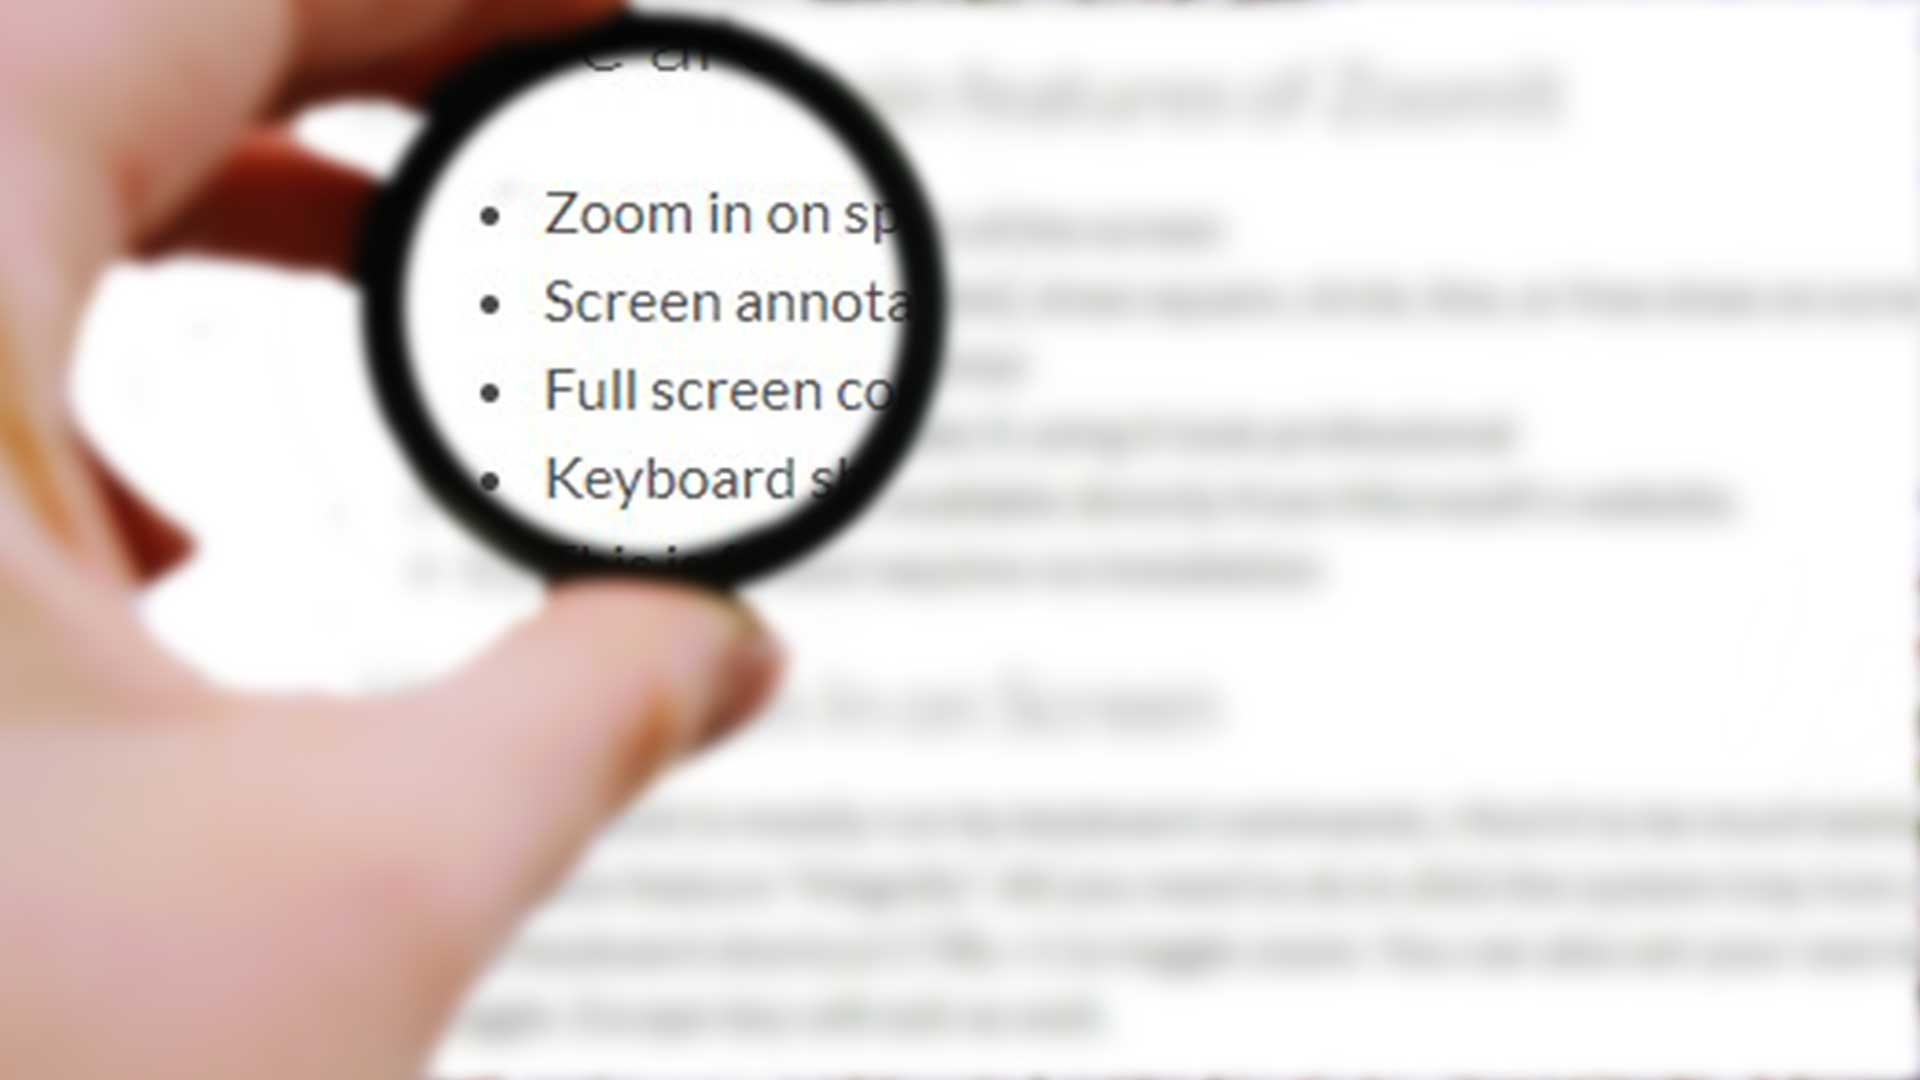 Zoom In On Screen and Annotate with This Free Presentation Software